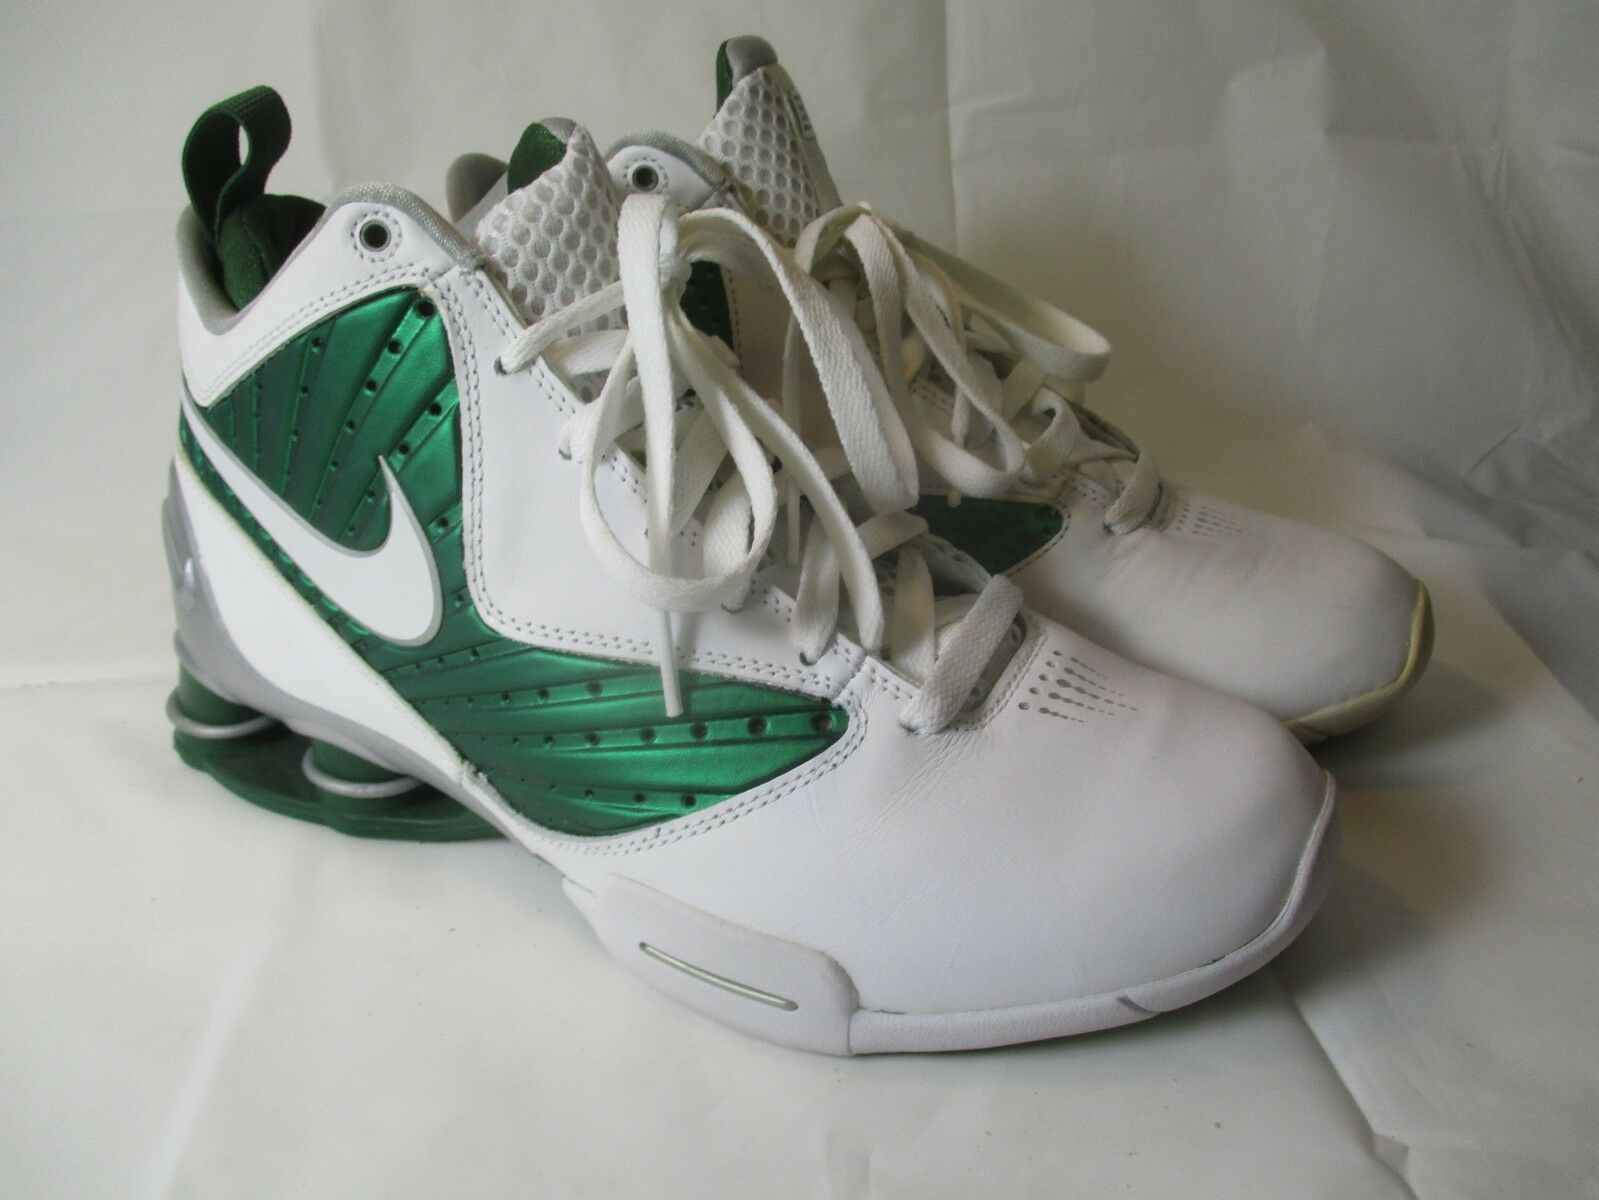 Nike Shox hightop basketball men's size 10